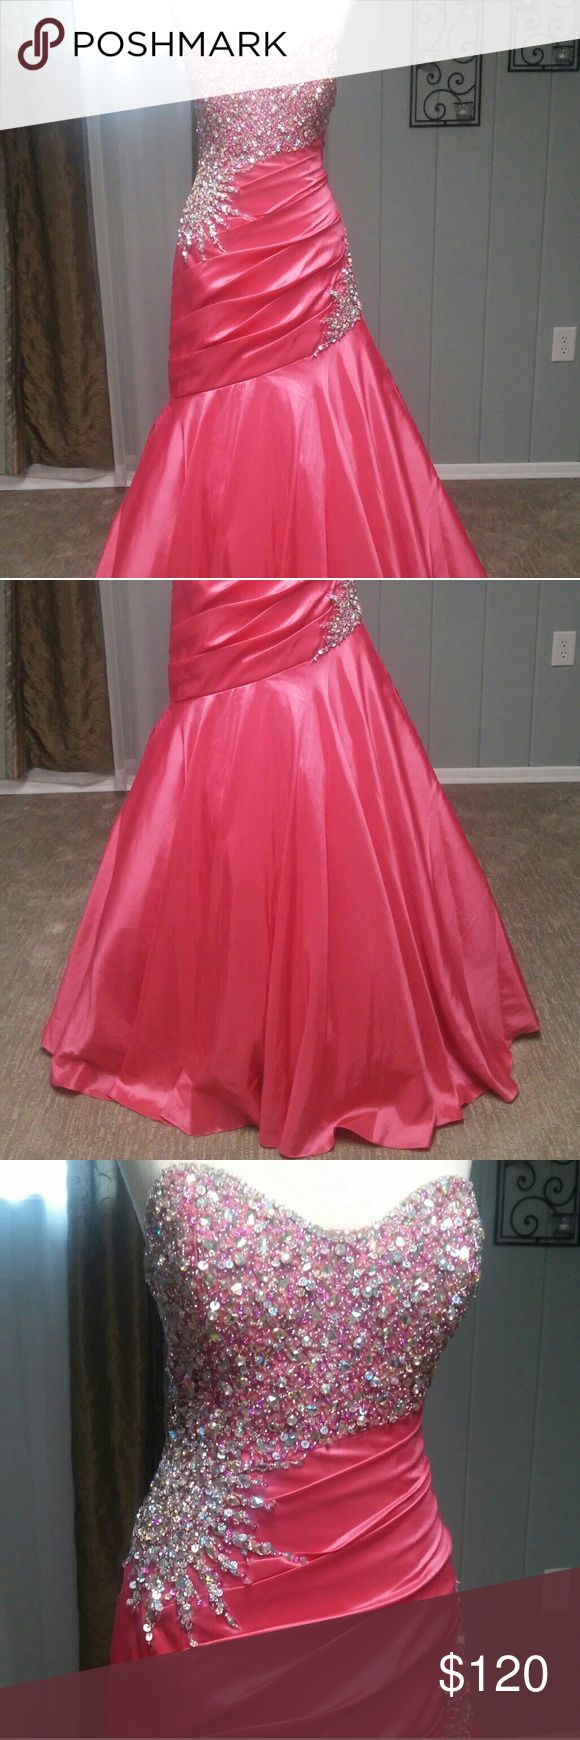 Pink Beaded Mermaid Style Gown | Prom Quinceañera Feel like a princess in this stunning floor length gown pink beaded gown! This would be perfect for any formal party like prom, quinceañera, sweet 16, ect. or a pageant.   - Size 8 - Silky taffeta fabric - Several layers of tooling to make the skirt extra full - Fully lined - Heavily beaded - New - still has original tags and extra beads - No spots or tares  - Floor length with small train - Designer: Tony Bowls - Le Gala - Original ticketed…